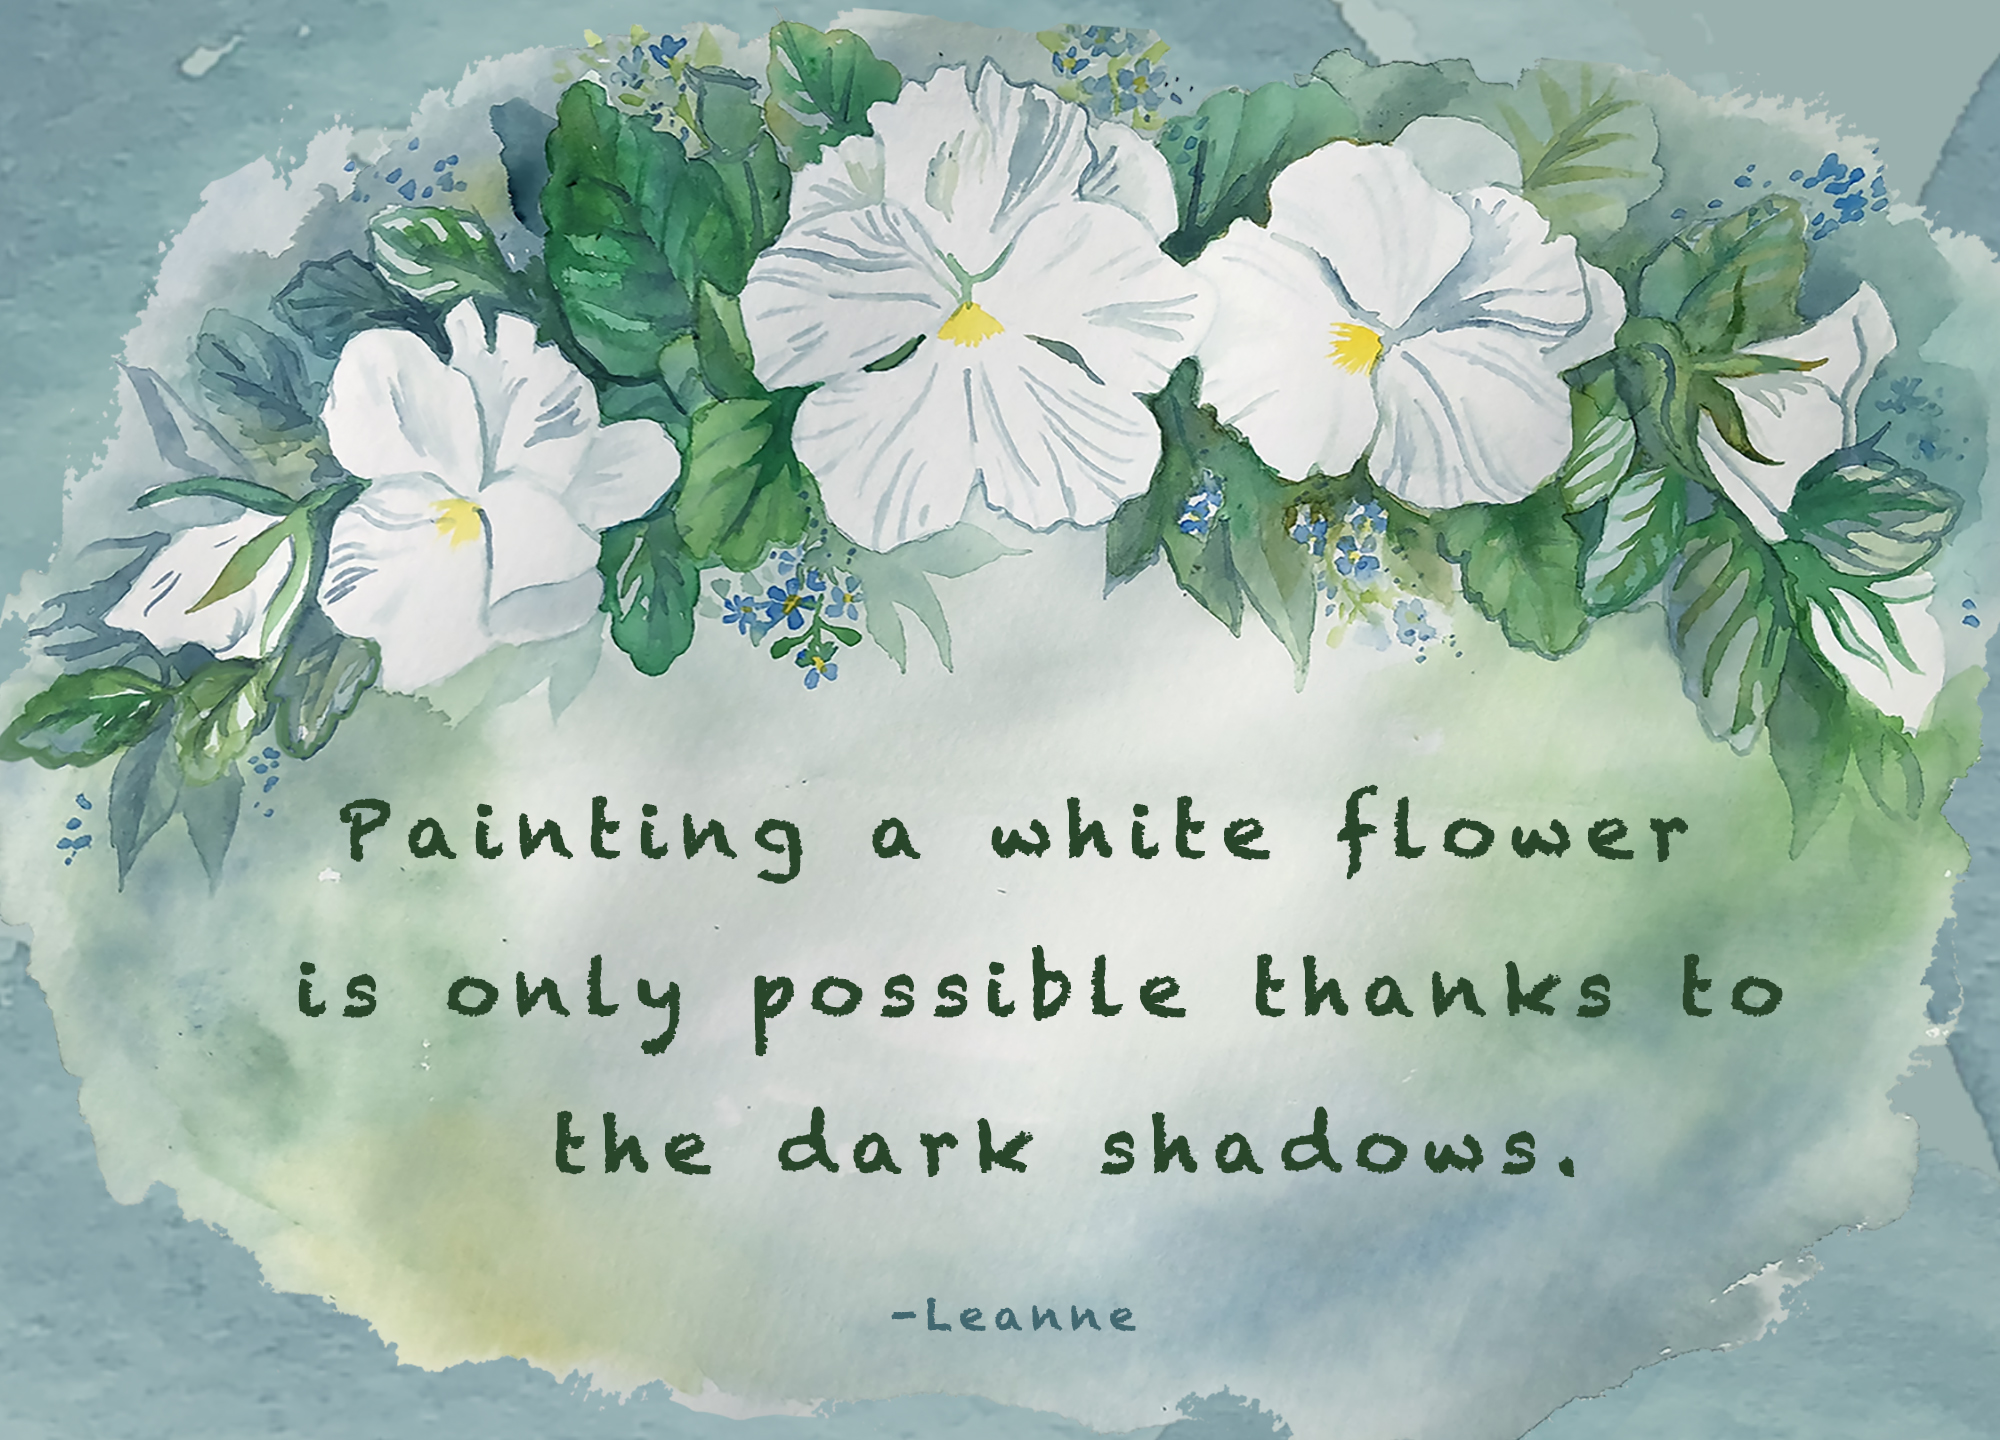 Painting a white flower